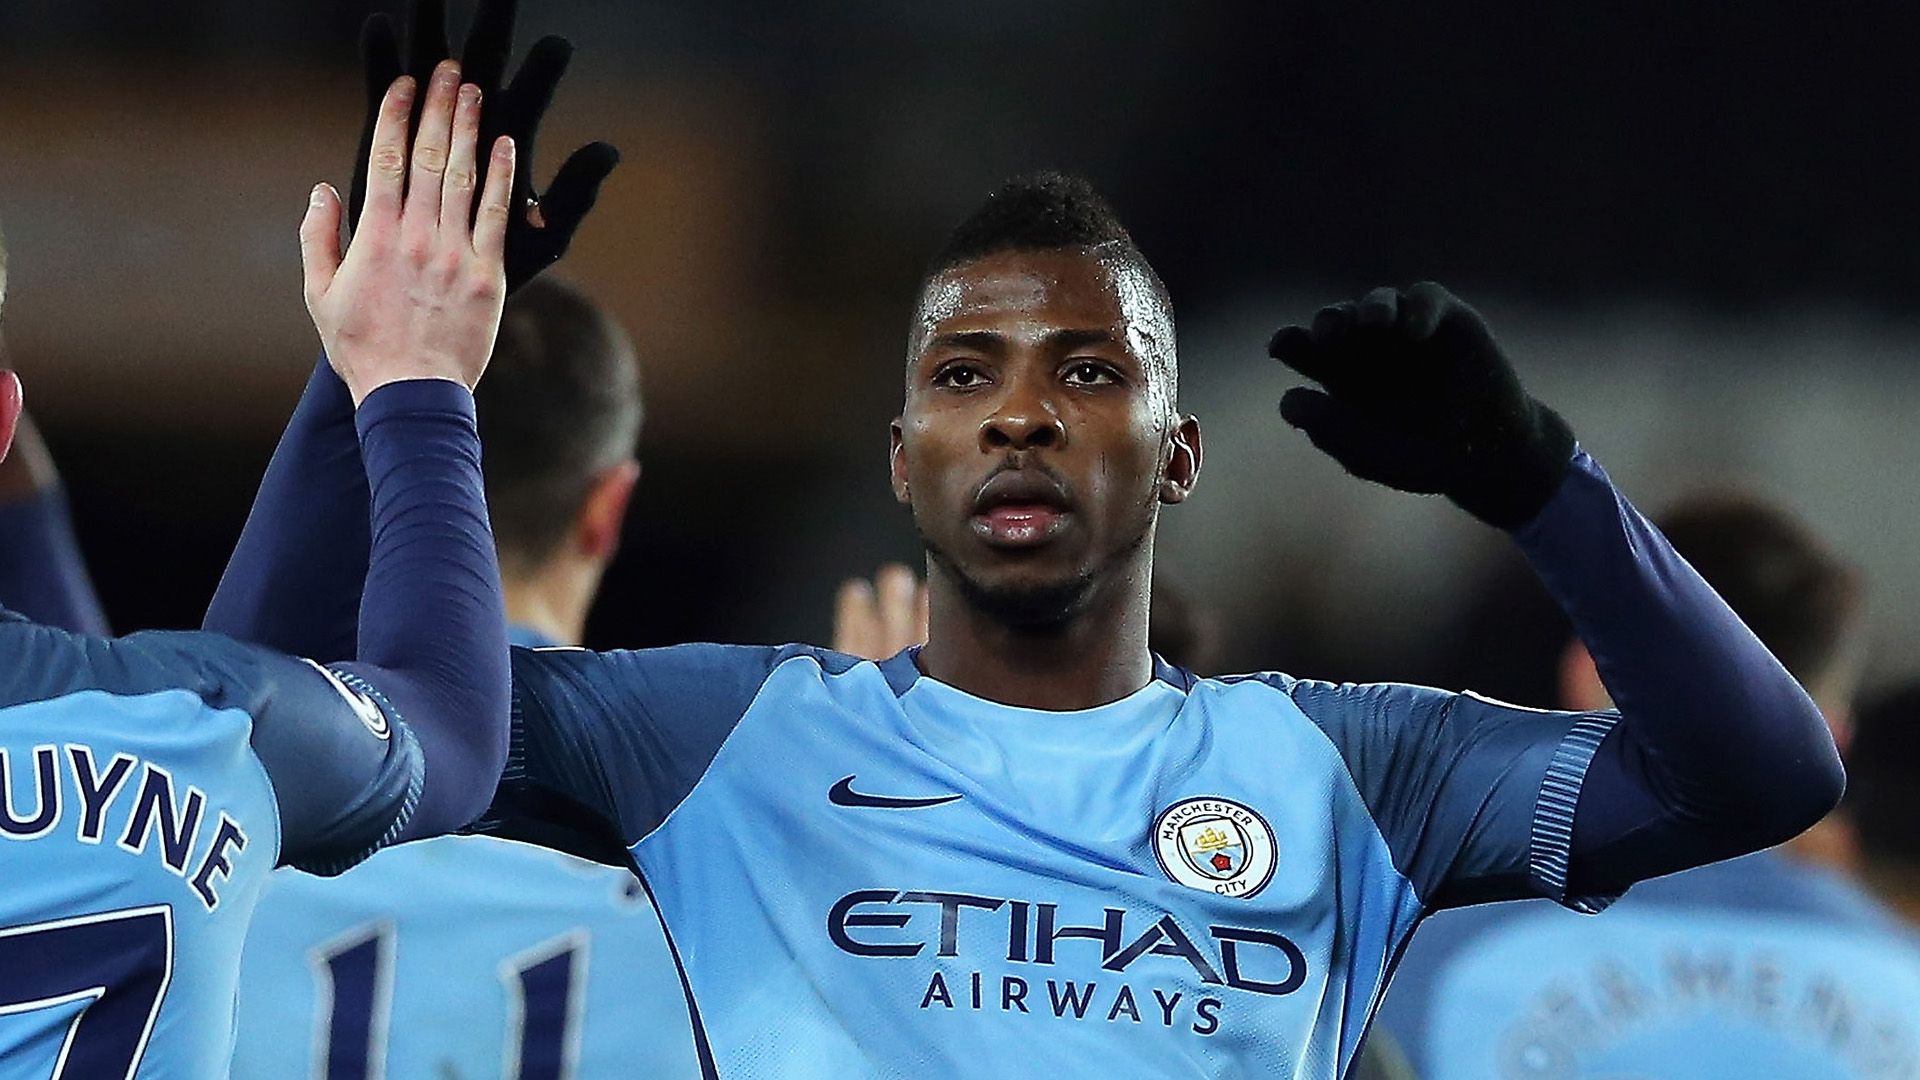 Udeze: Iheanacho Should Consider Bundesliga Or La Liga Move, Not Only EPL